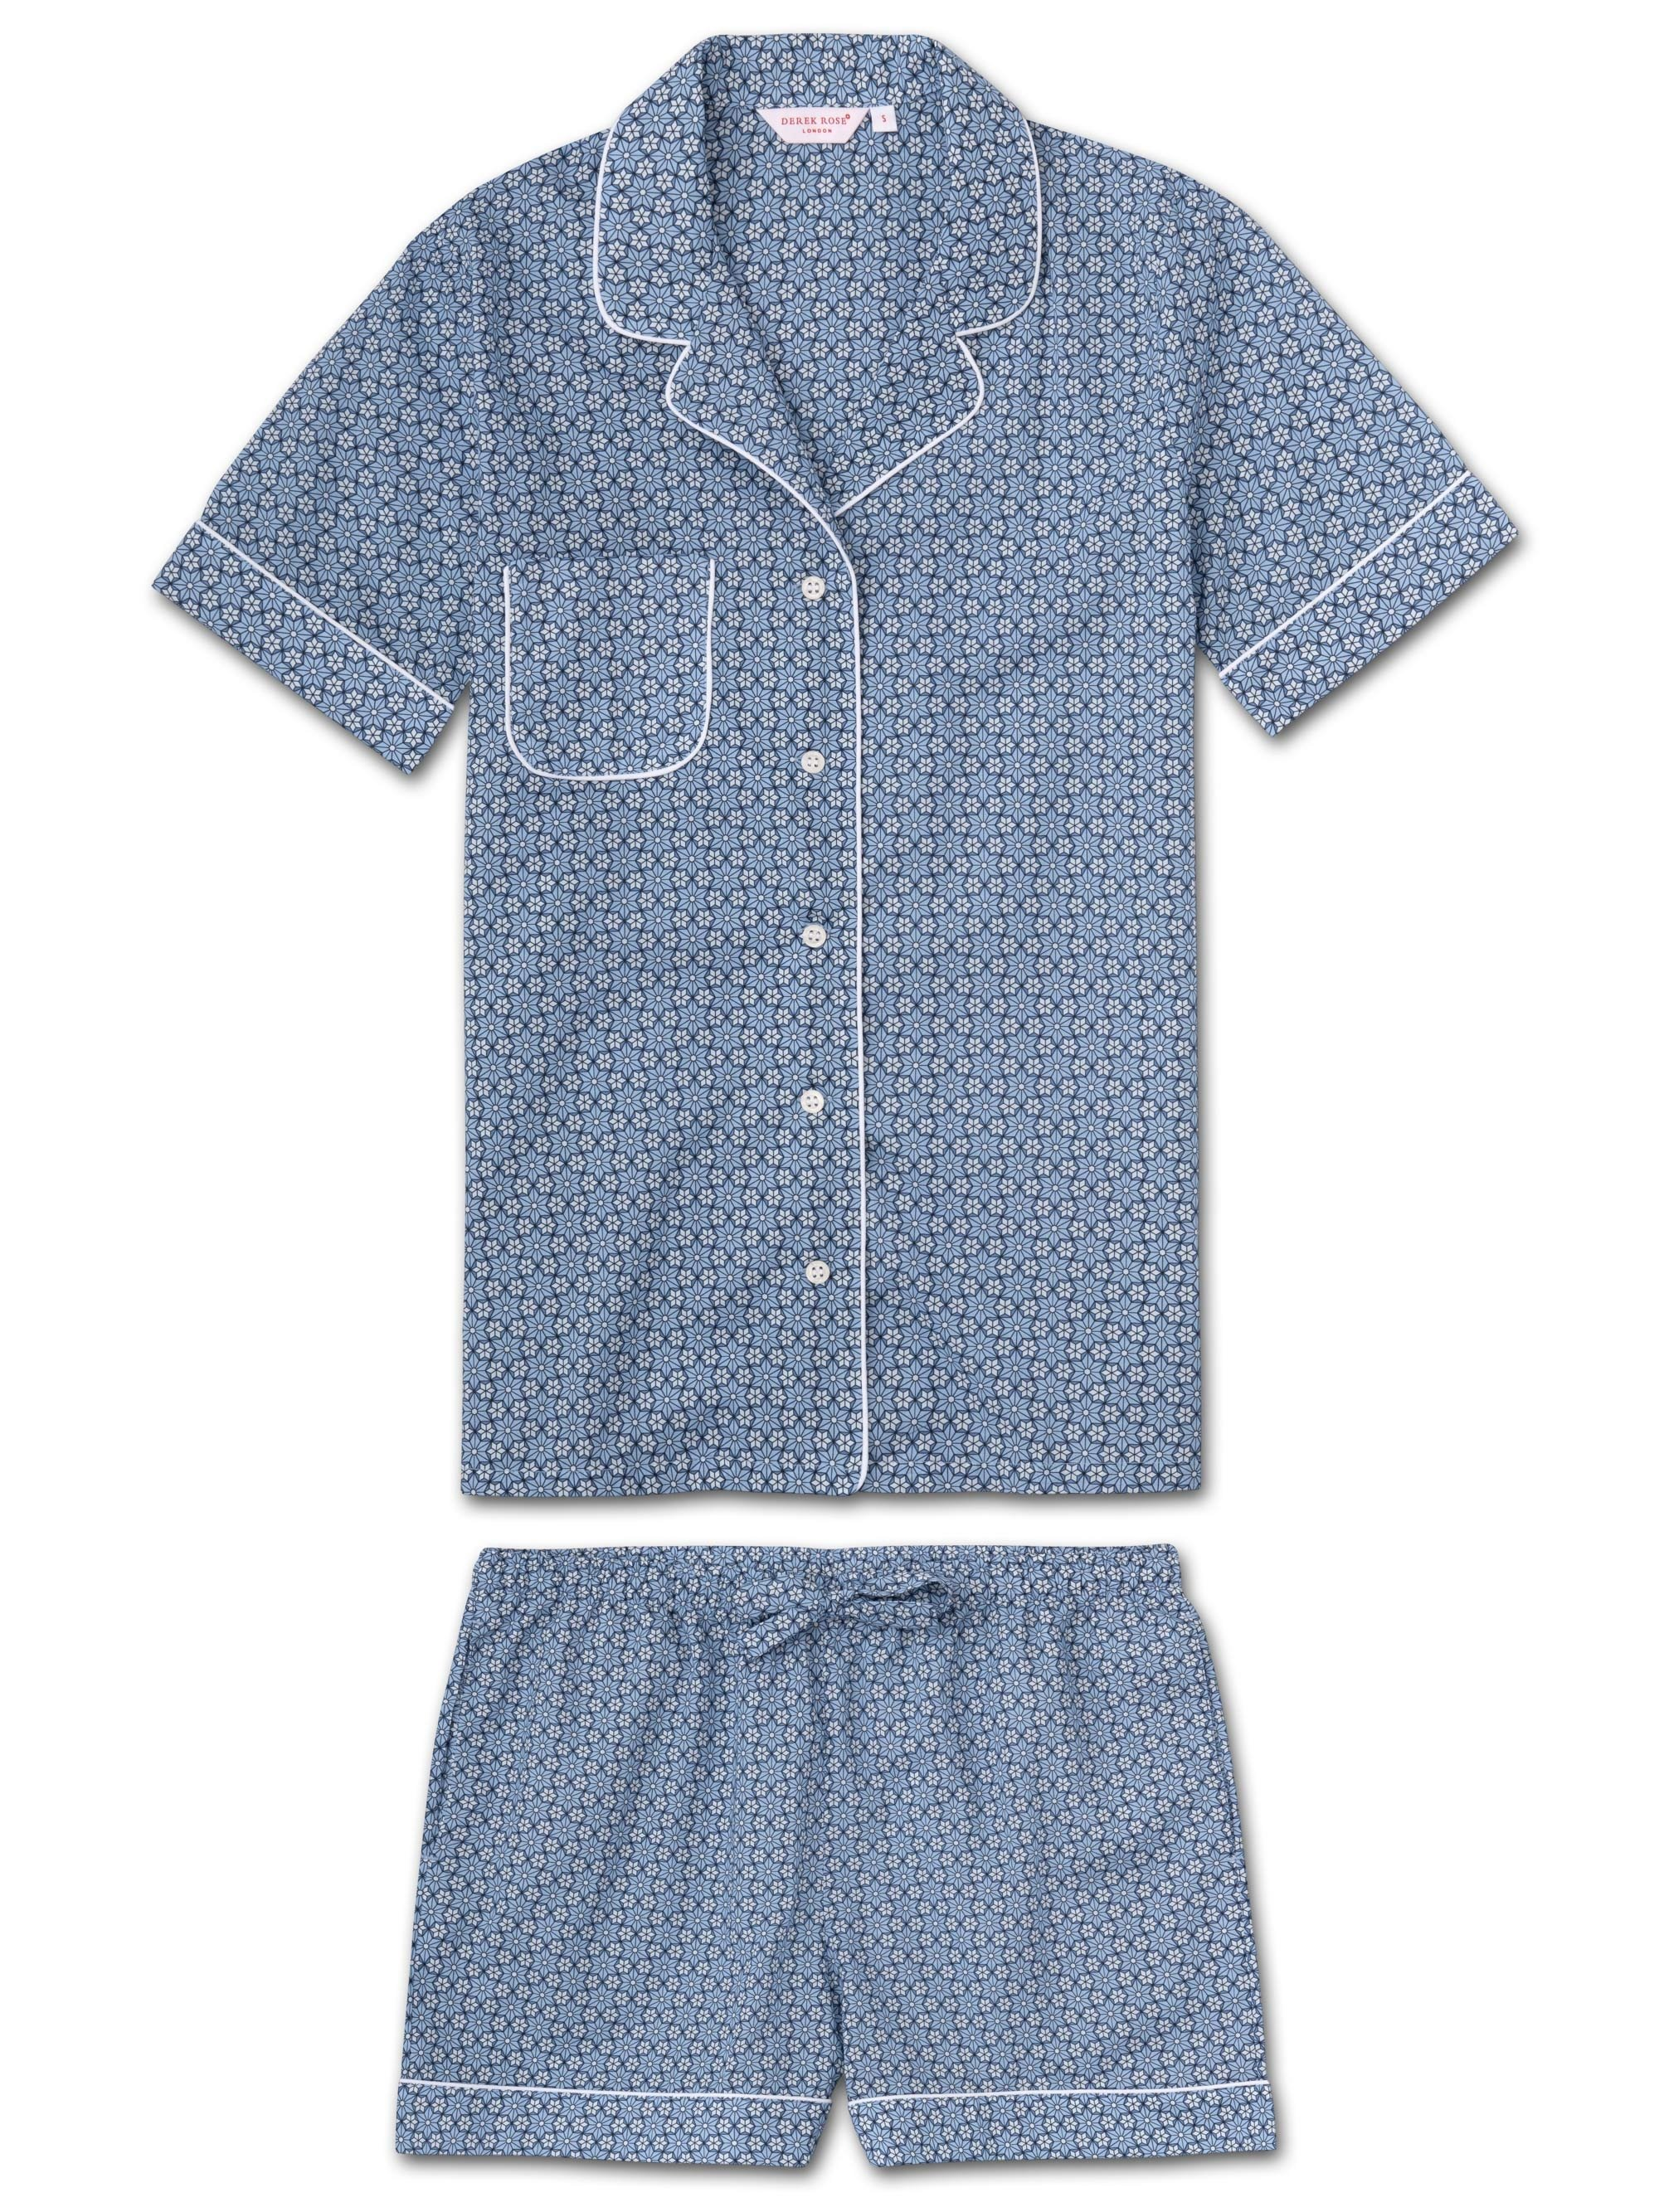 Women's Shortie Pyjamas Ledbury 37 Cotton Batiste Blue